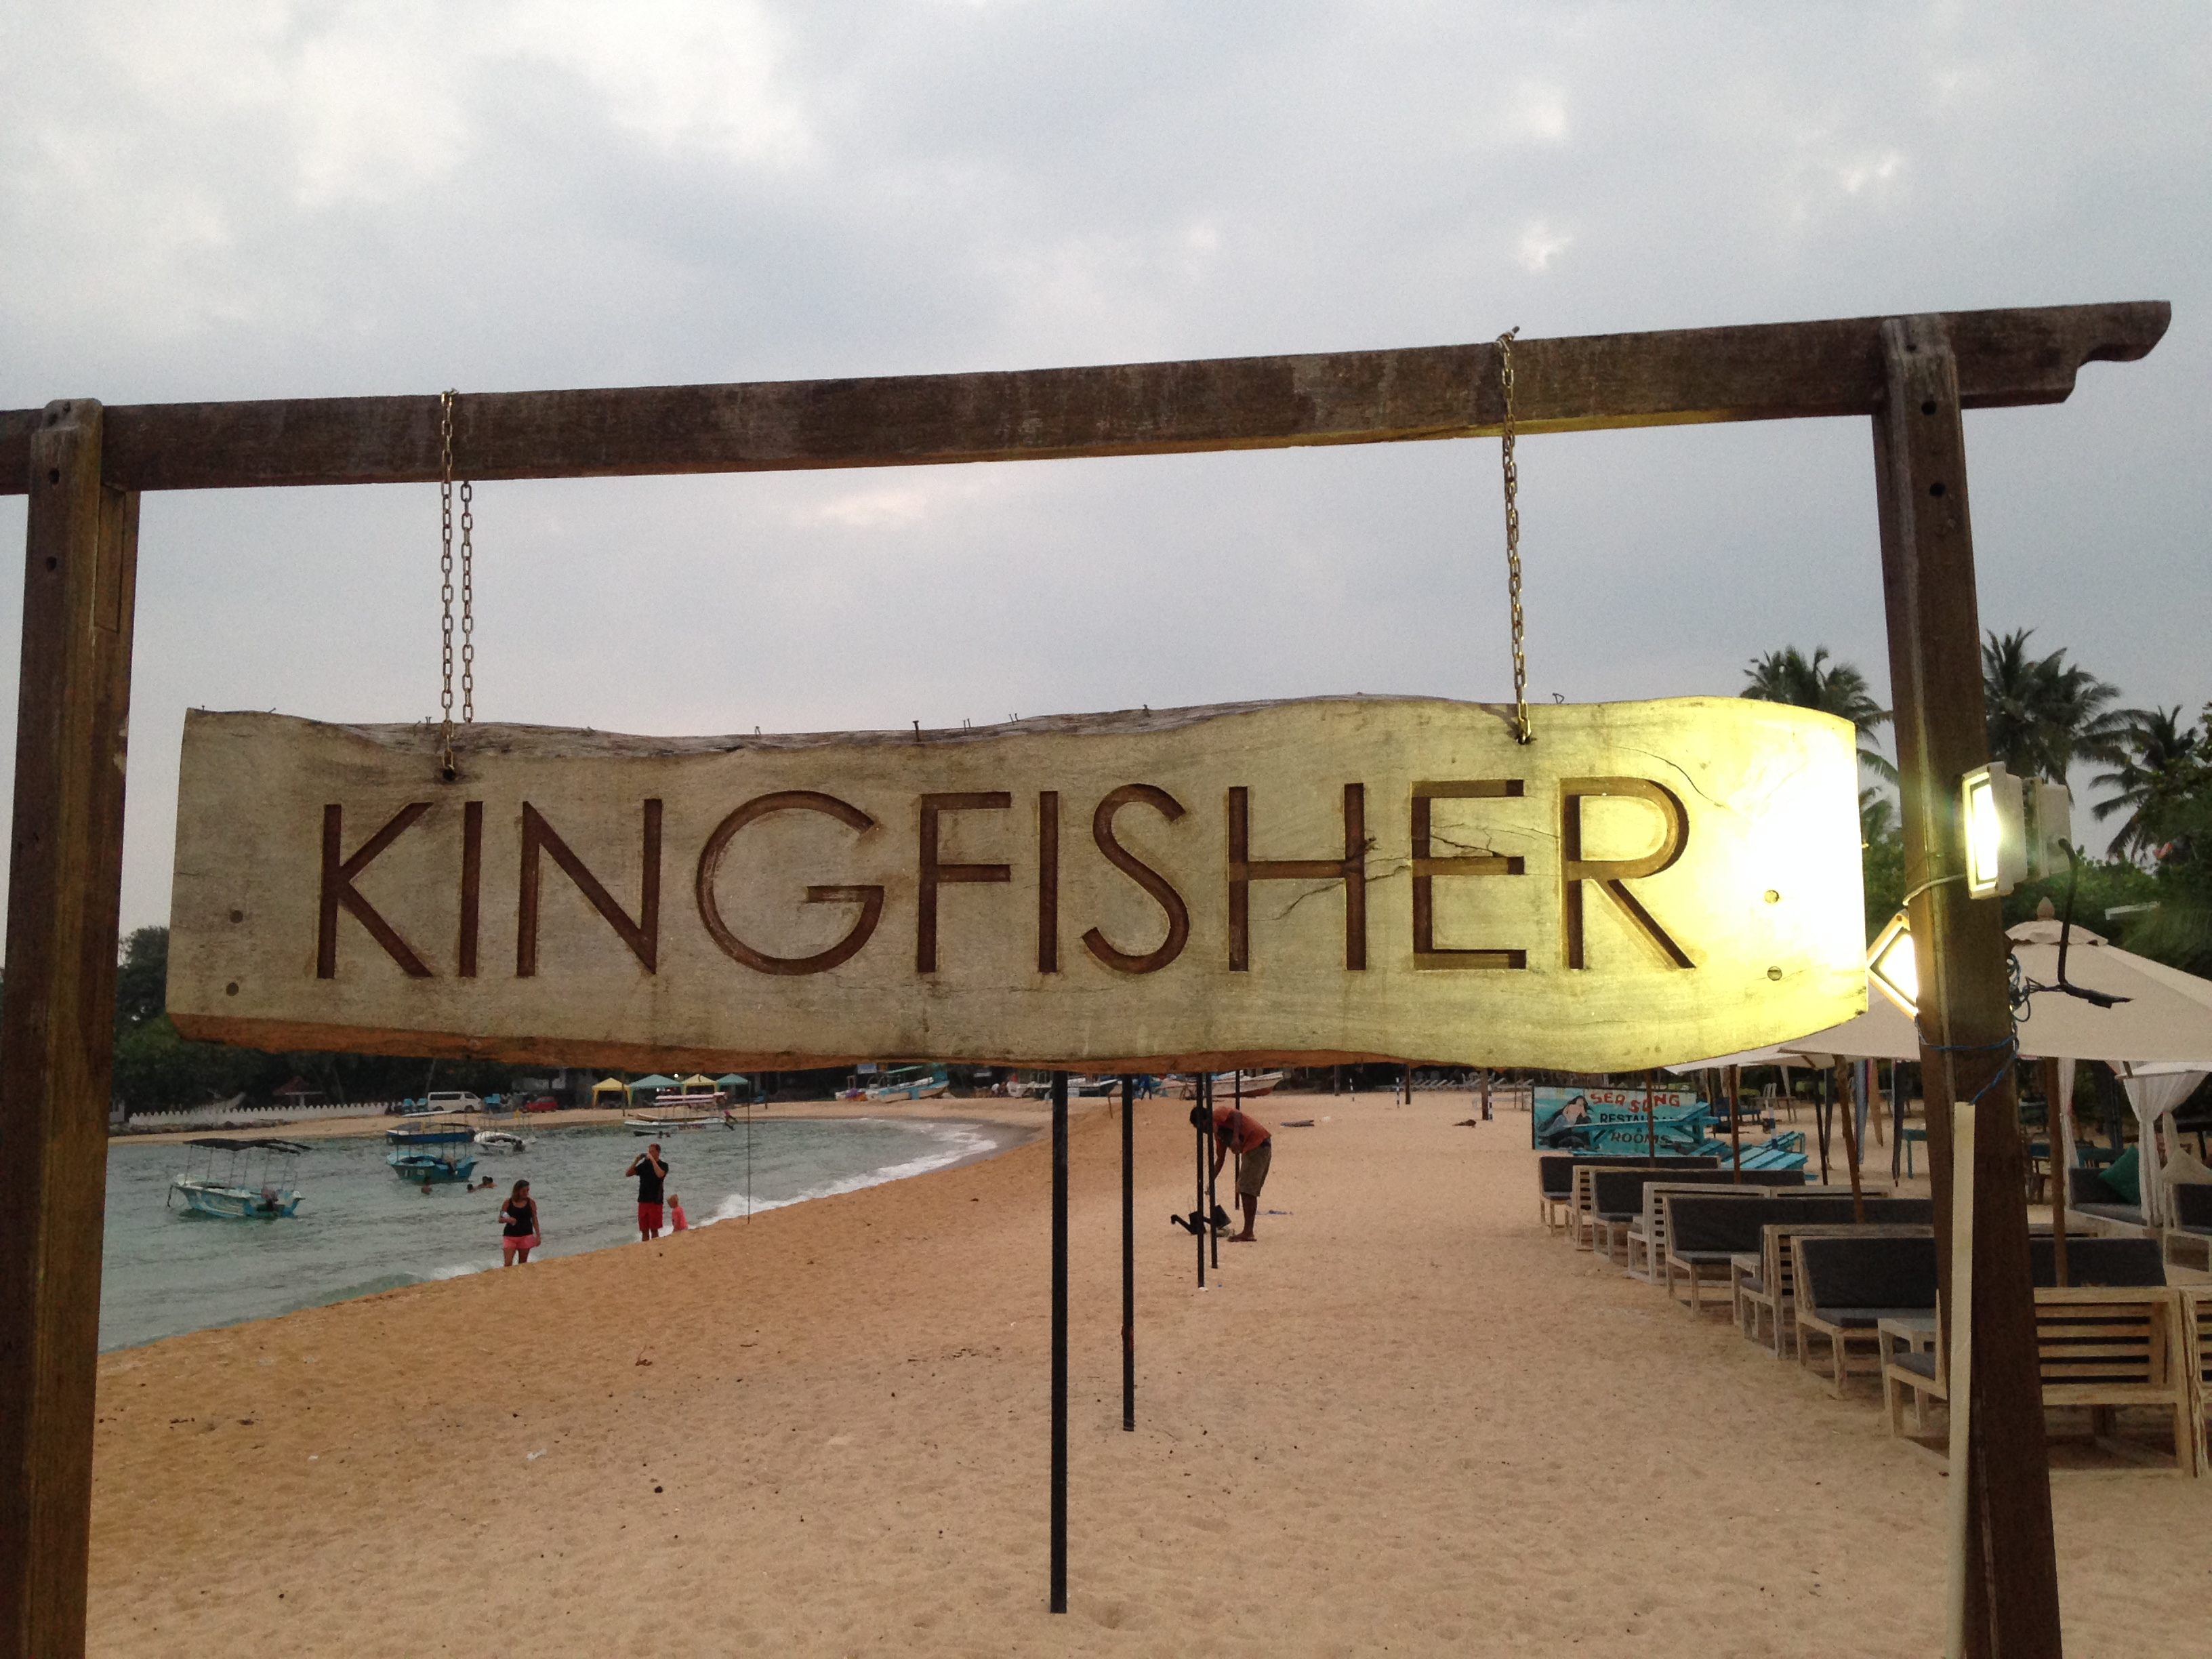 Our favorite restaurant Kingfisher